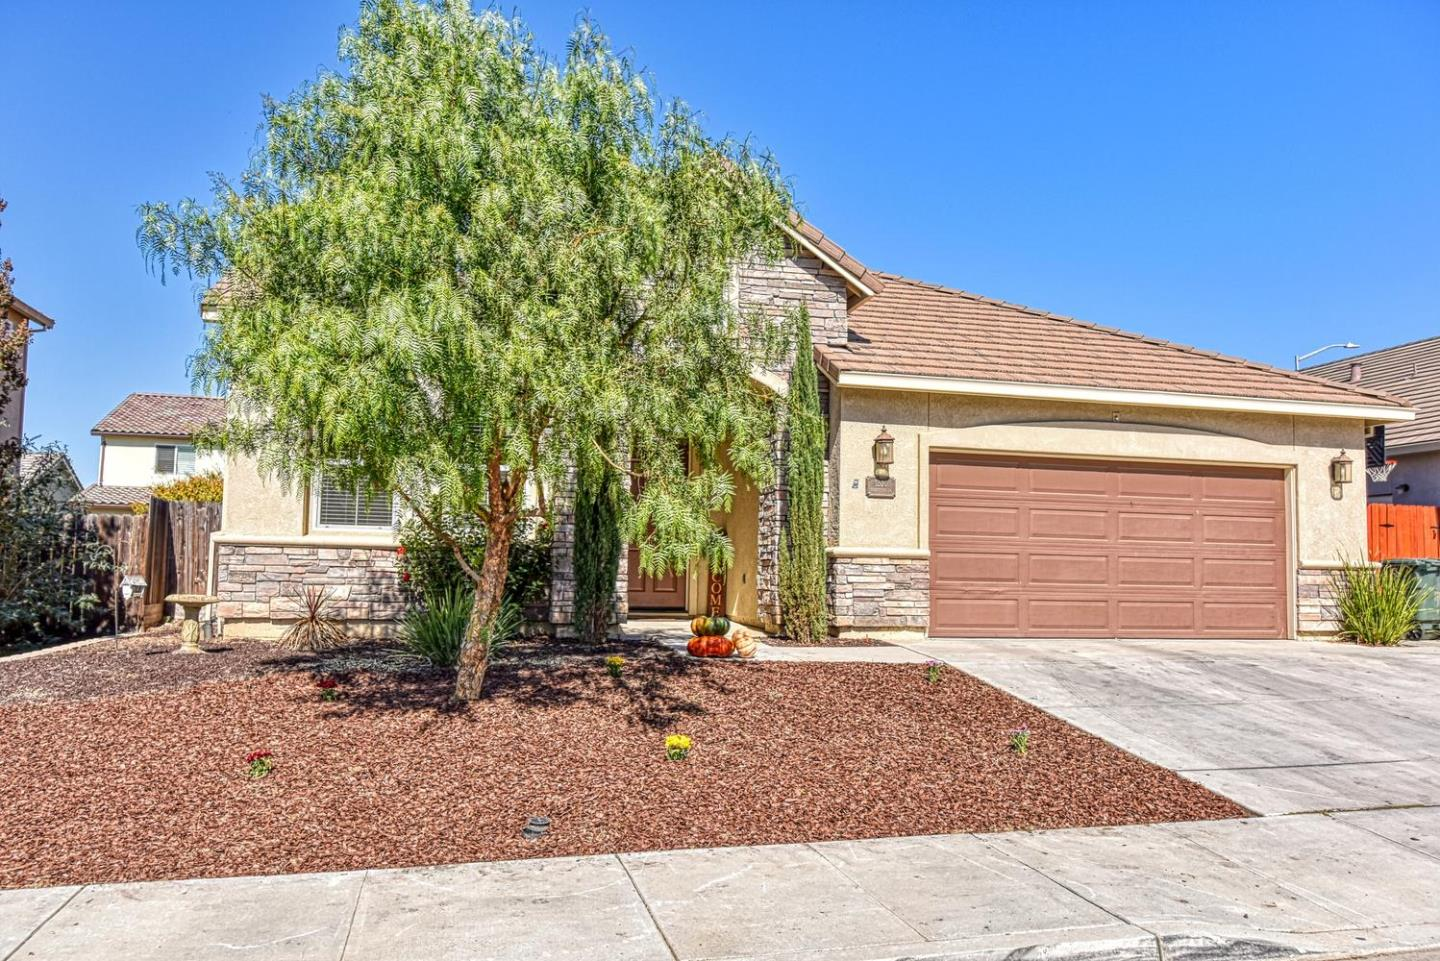 Detail Gallery Image 1 of 1 For 1330 Brigantino Dr, Hollister, CA, 95023 - 4 Beds | 2 Baths